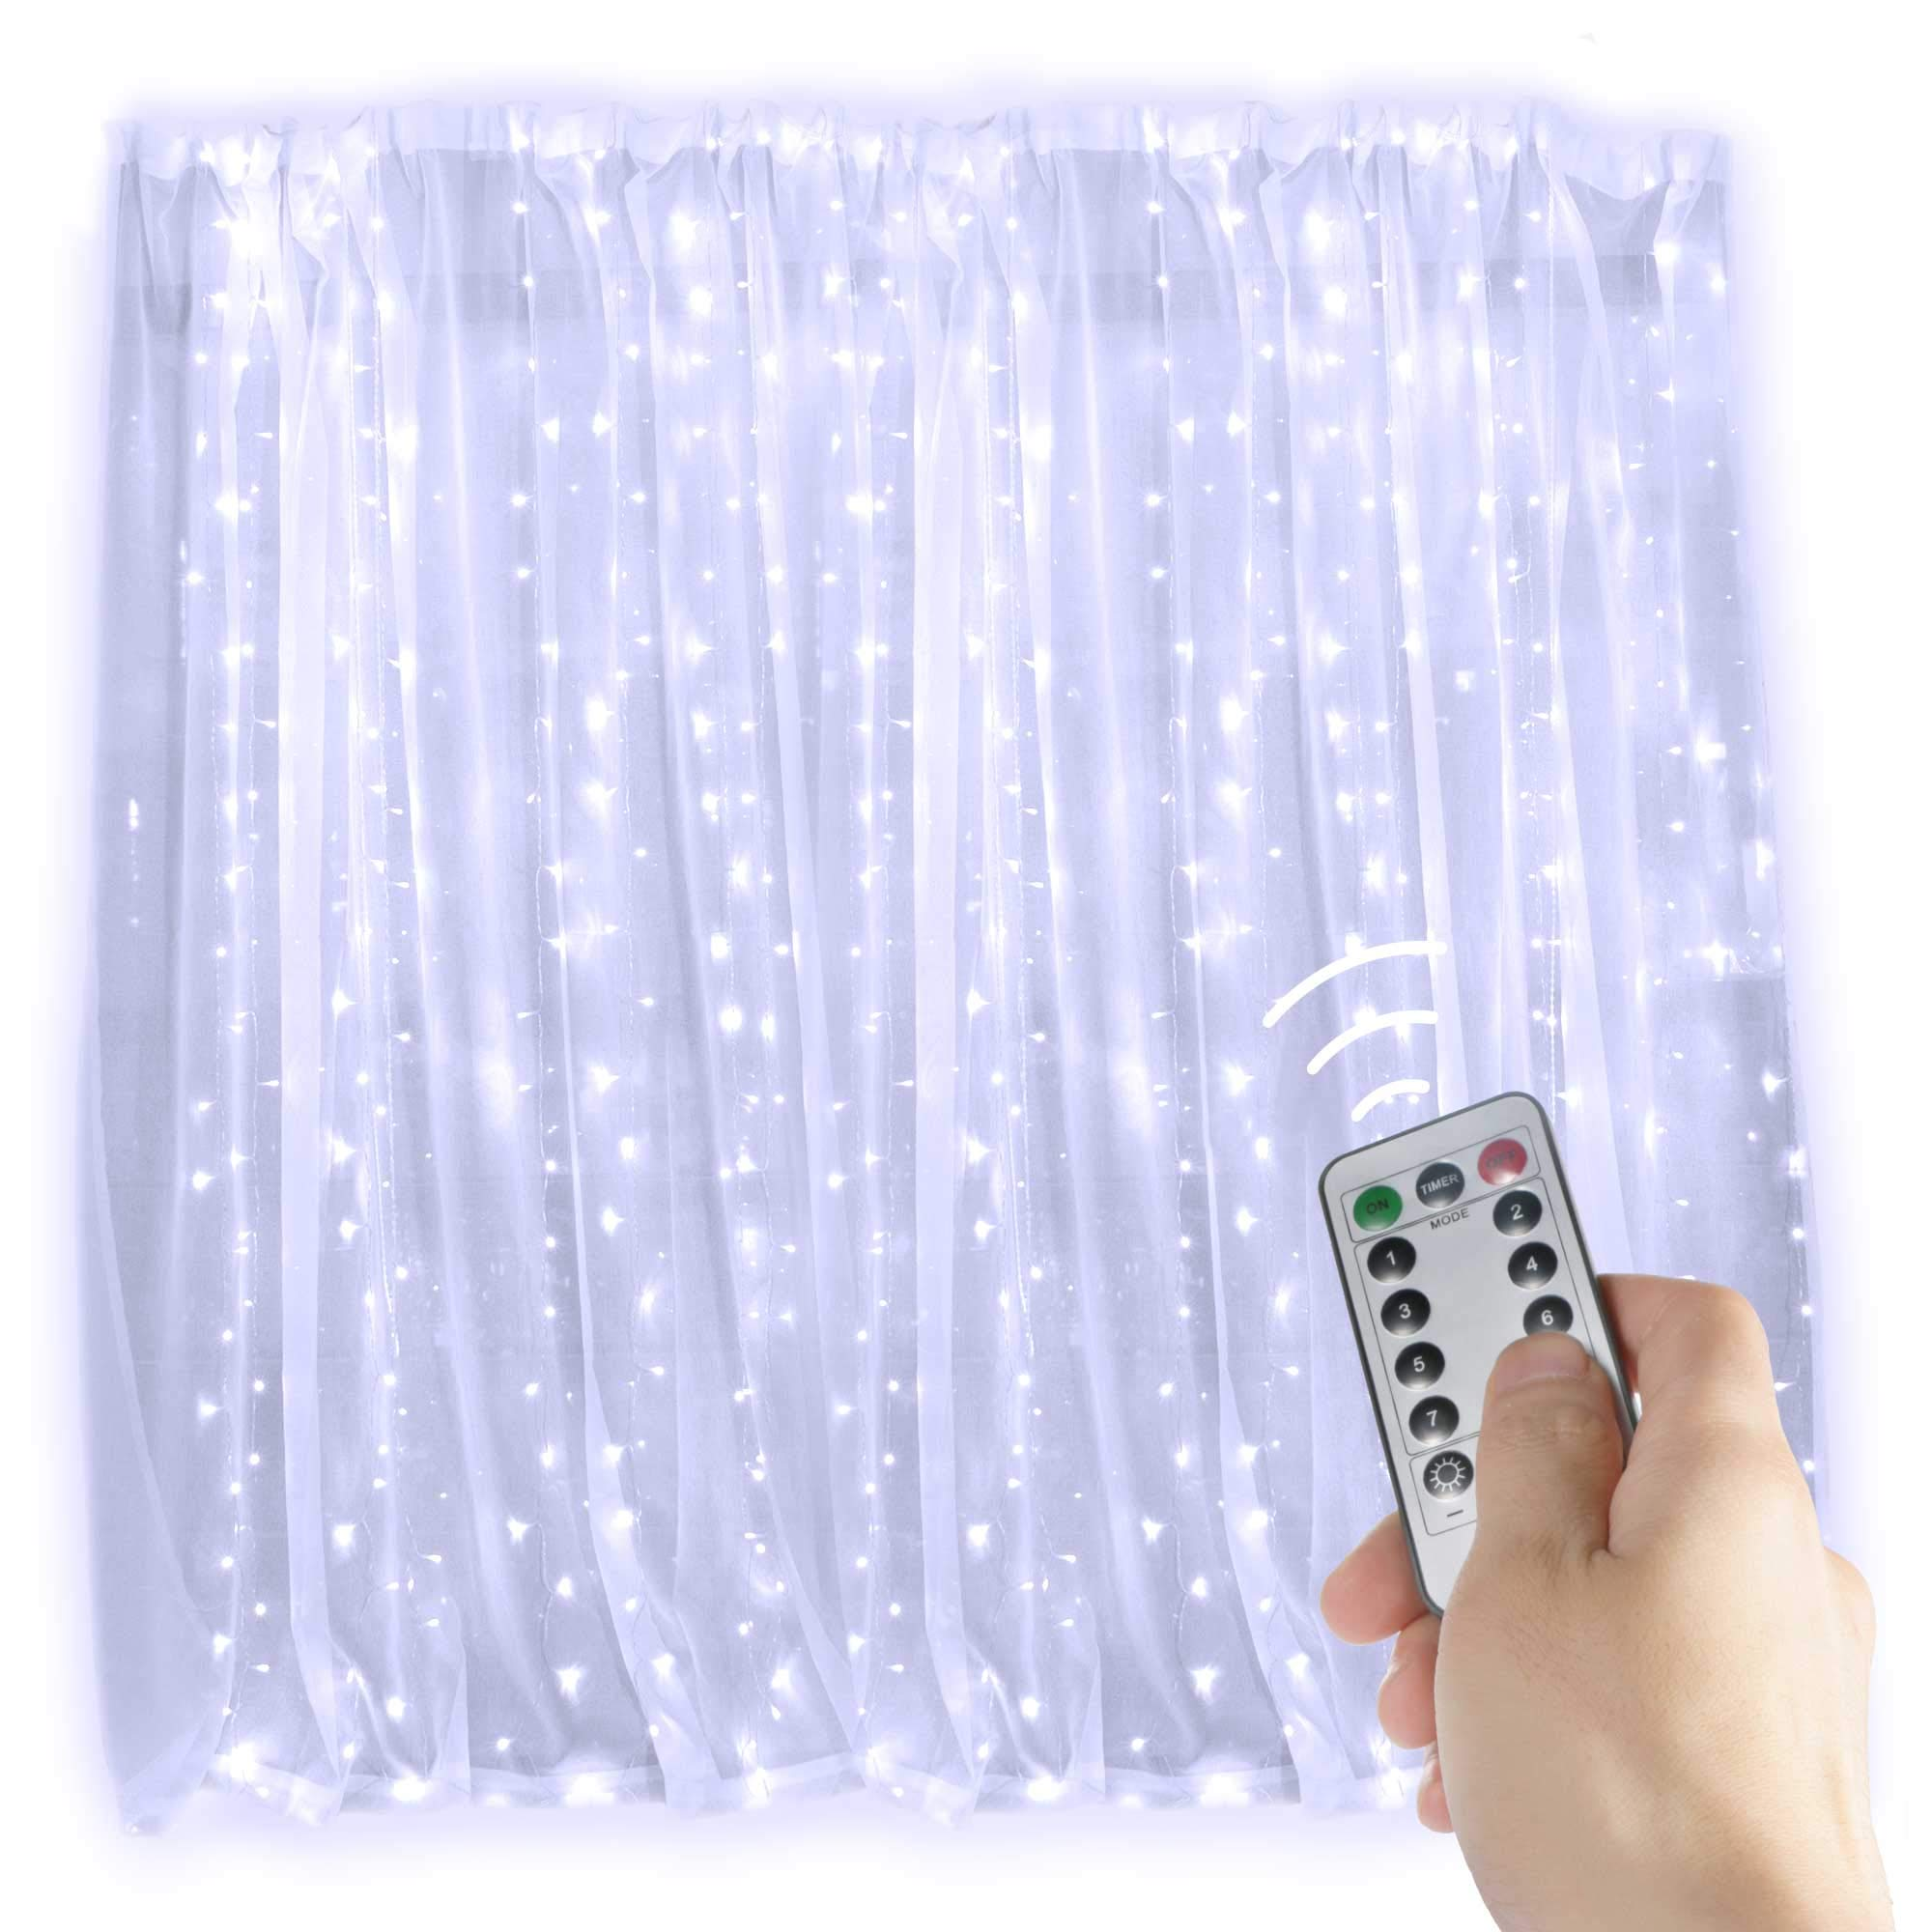 Brightown String Lights Window Curtain,300 LED Icicle Fairy Twinkle Starry Lights with Remote and Timer-UL Listed for Indoor and Outdoor, Wedding, Home Bedroom Wall Decoration, Party (Pure White) by Brightown